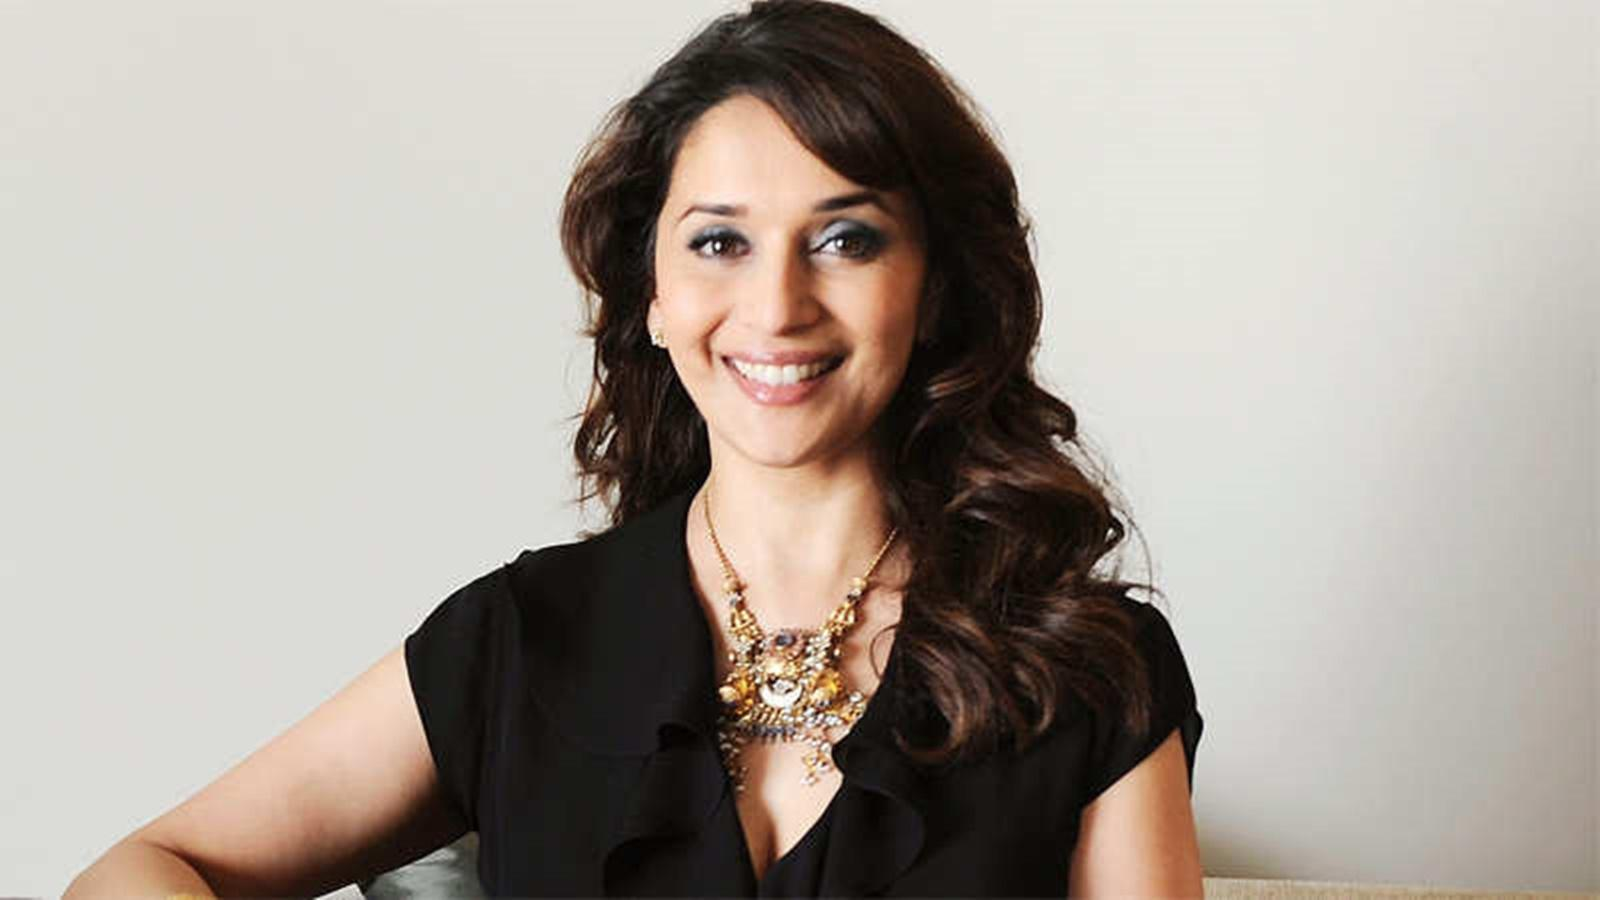 Madhuri Dixit soon to come up with an English pop album